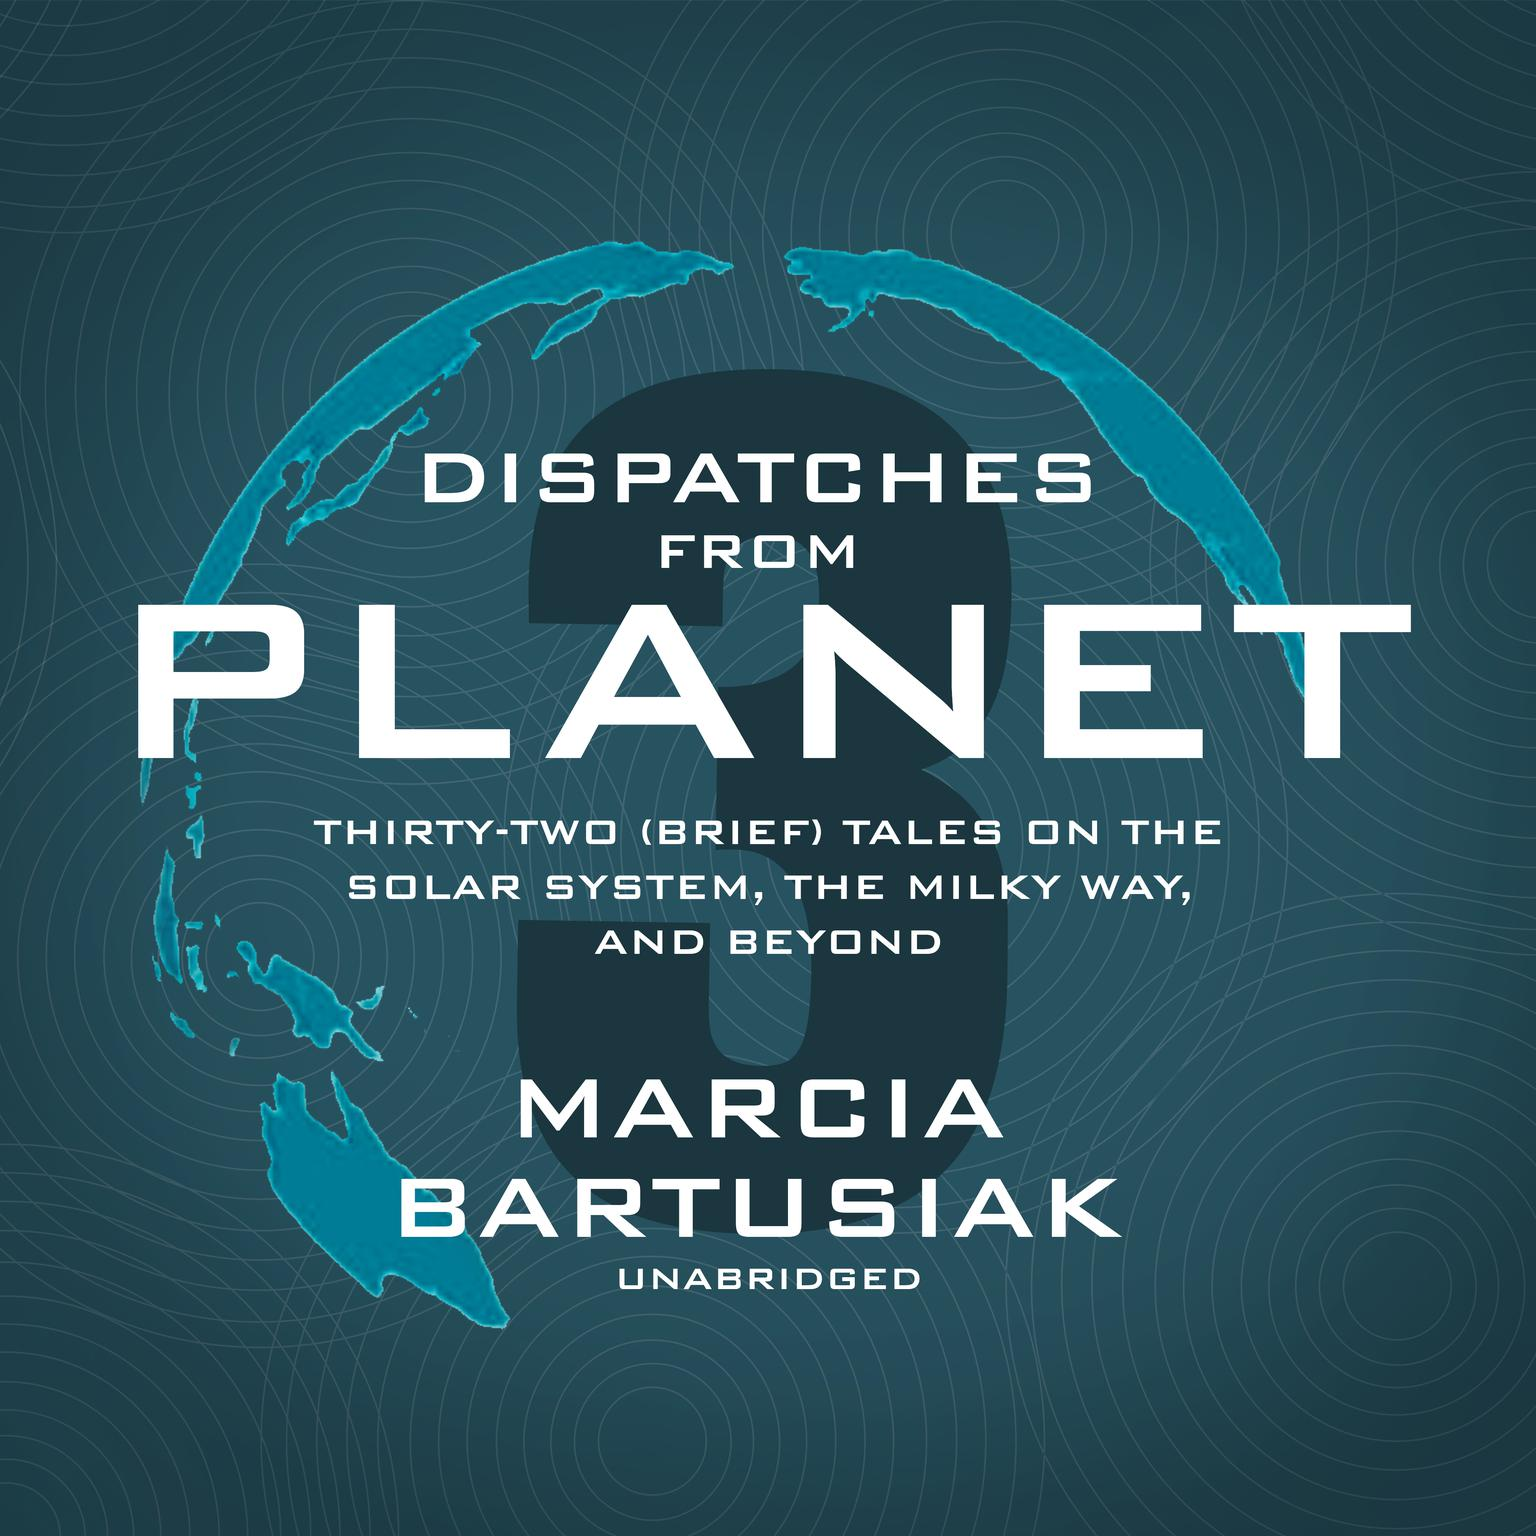 Dispatches from Planet 3: Thirty-Two (Brief) Tales on the Solar System, the Milky Way, and Beyond Audiobook, by Marcia Bartusiak